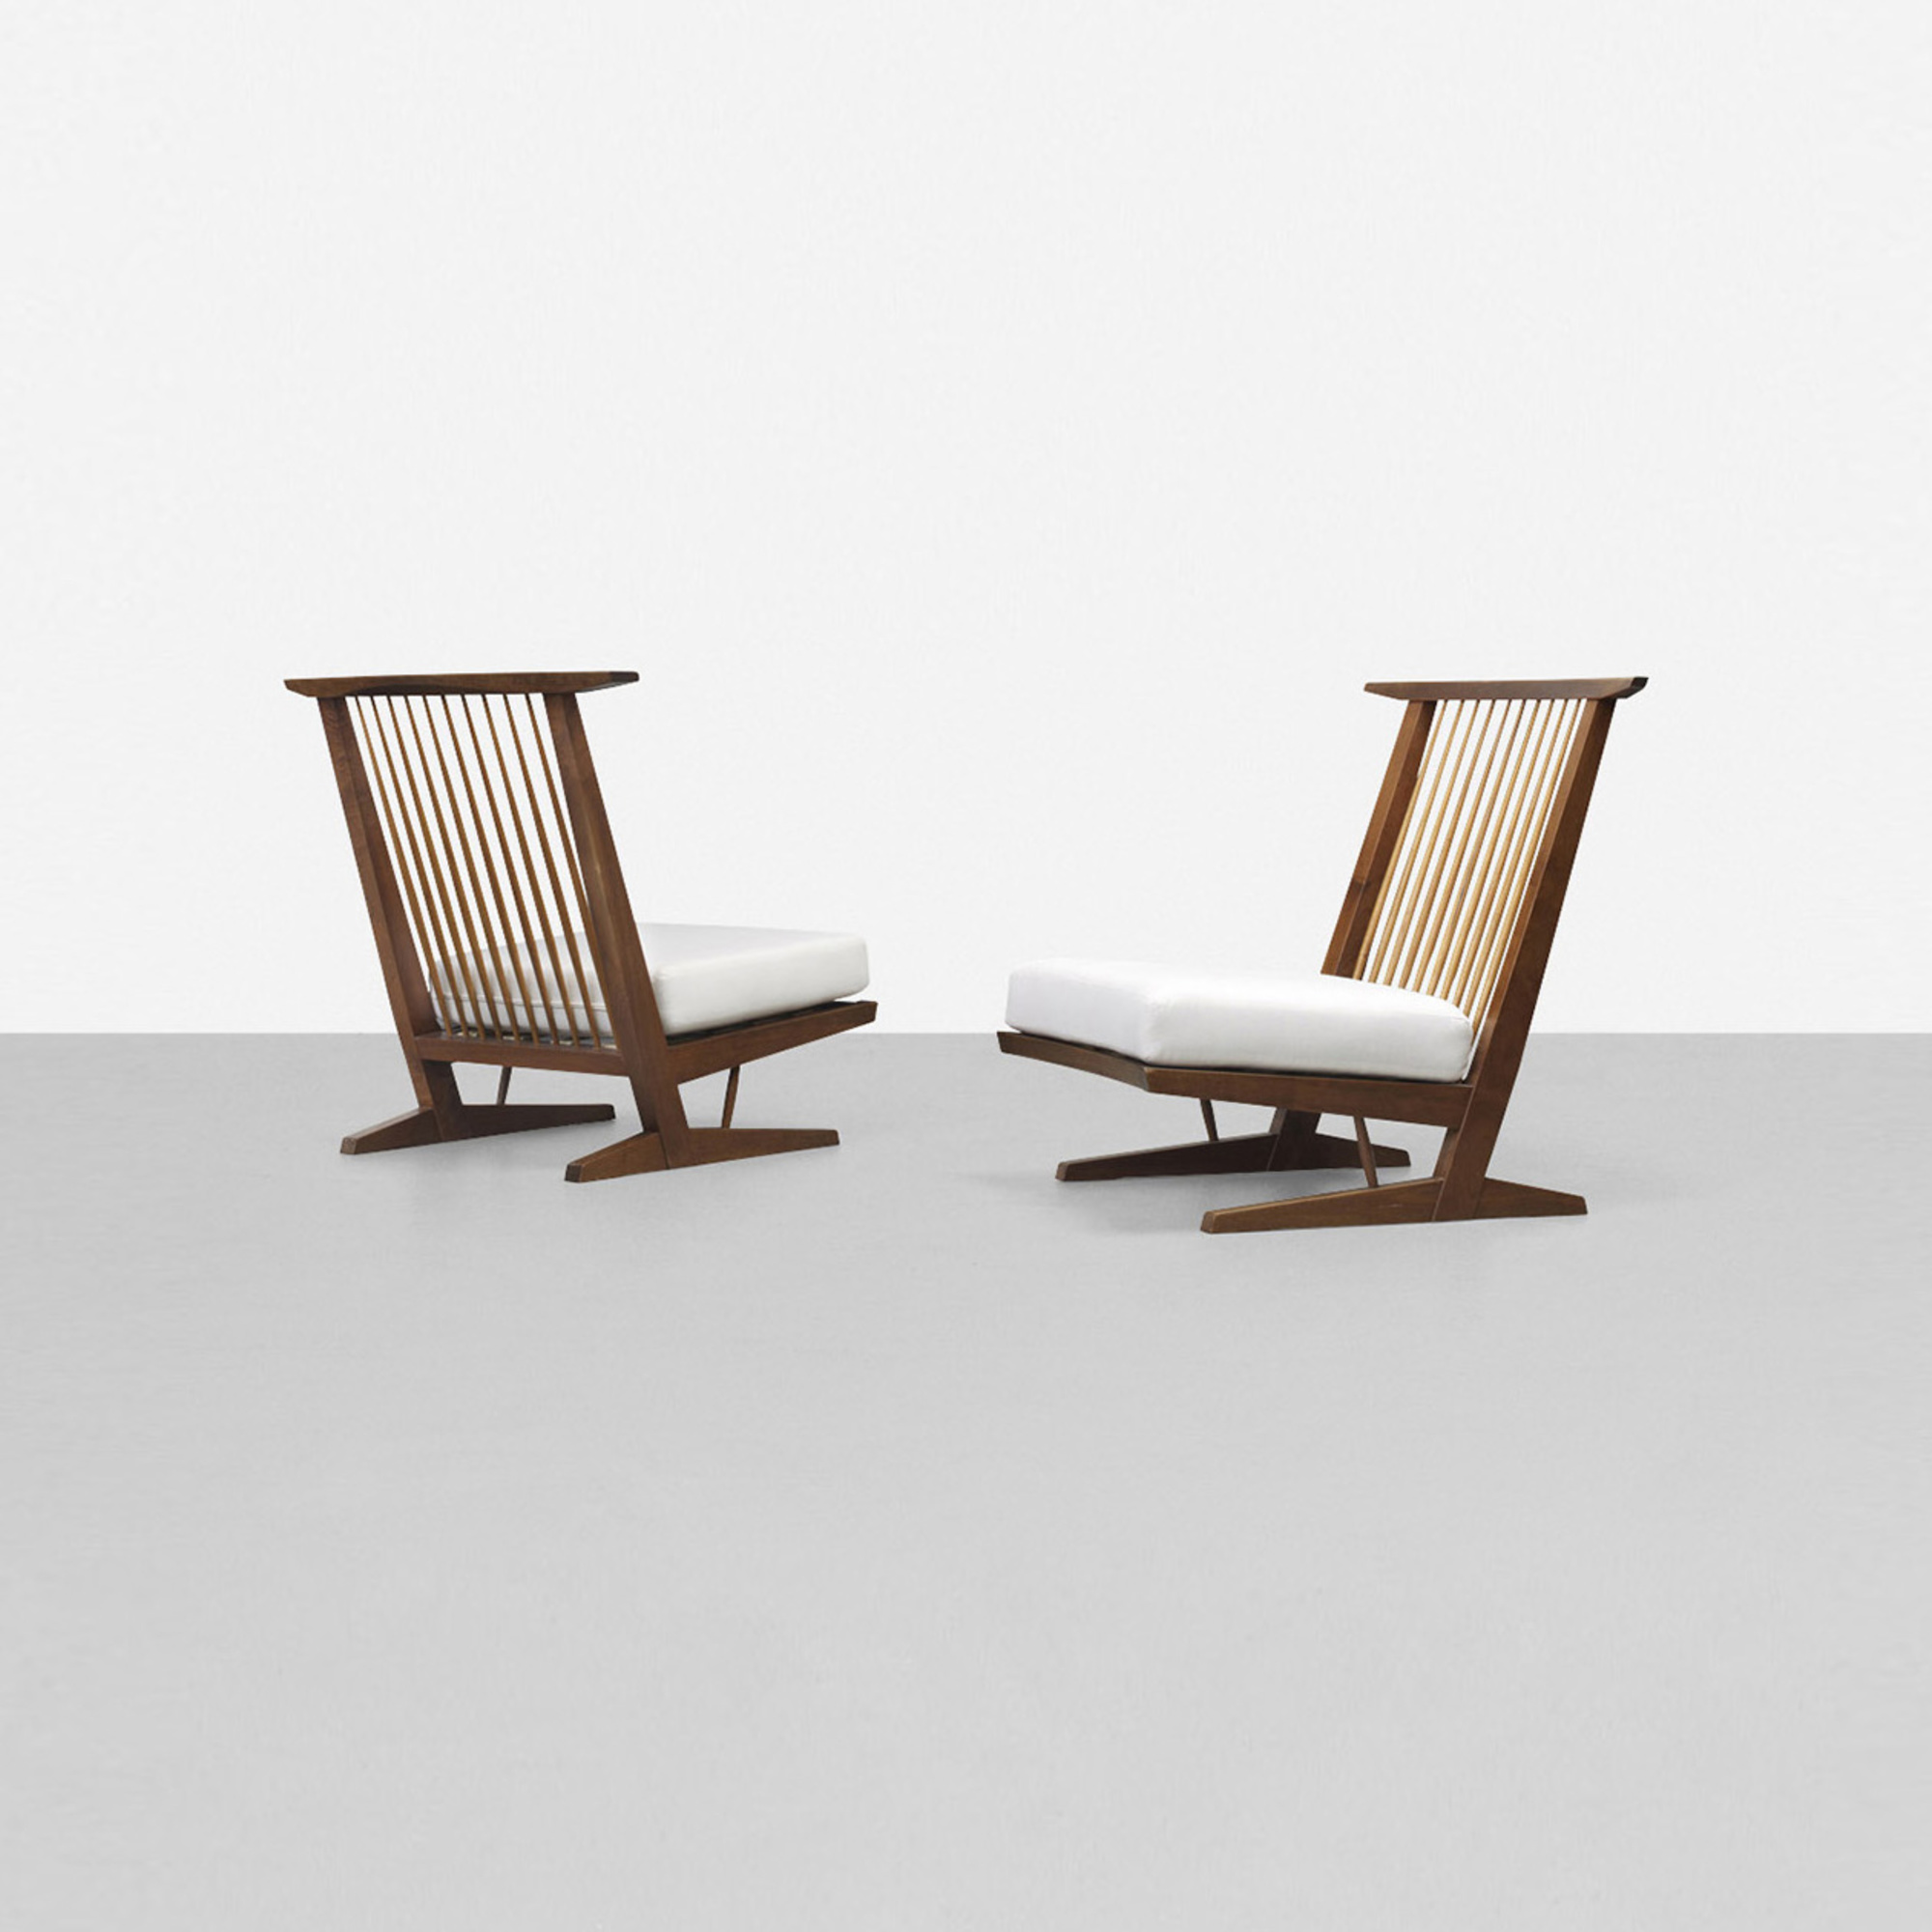 146: George Nakashima / Conoid Cushion Lounge Chairs, Pair (1 Of 4)